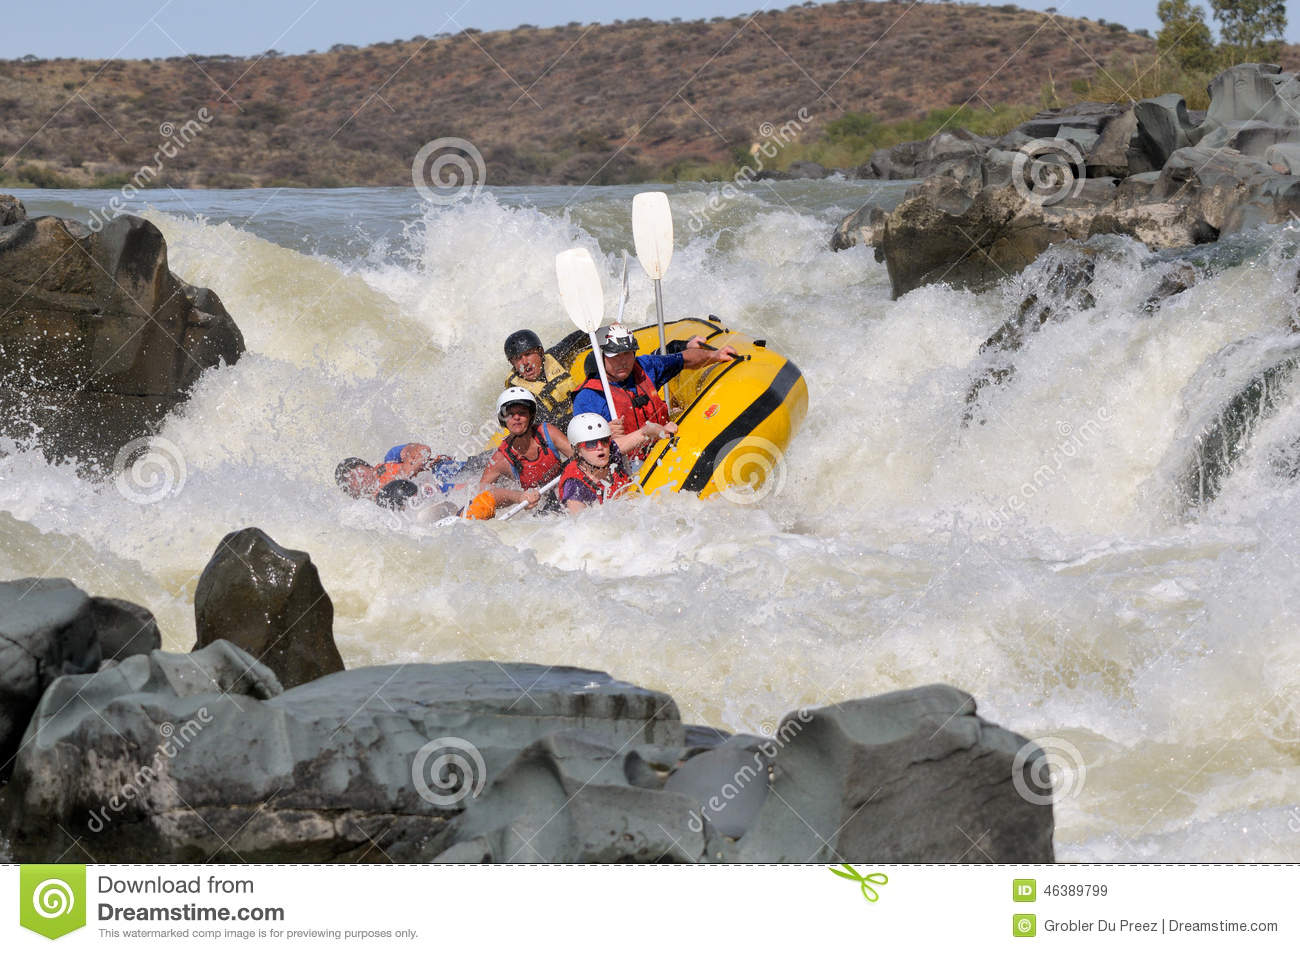 Negotiating Hell s Gate in the Gariep River (Orange River), Sout